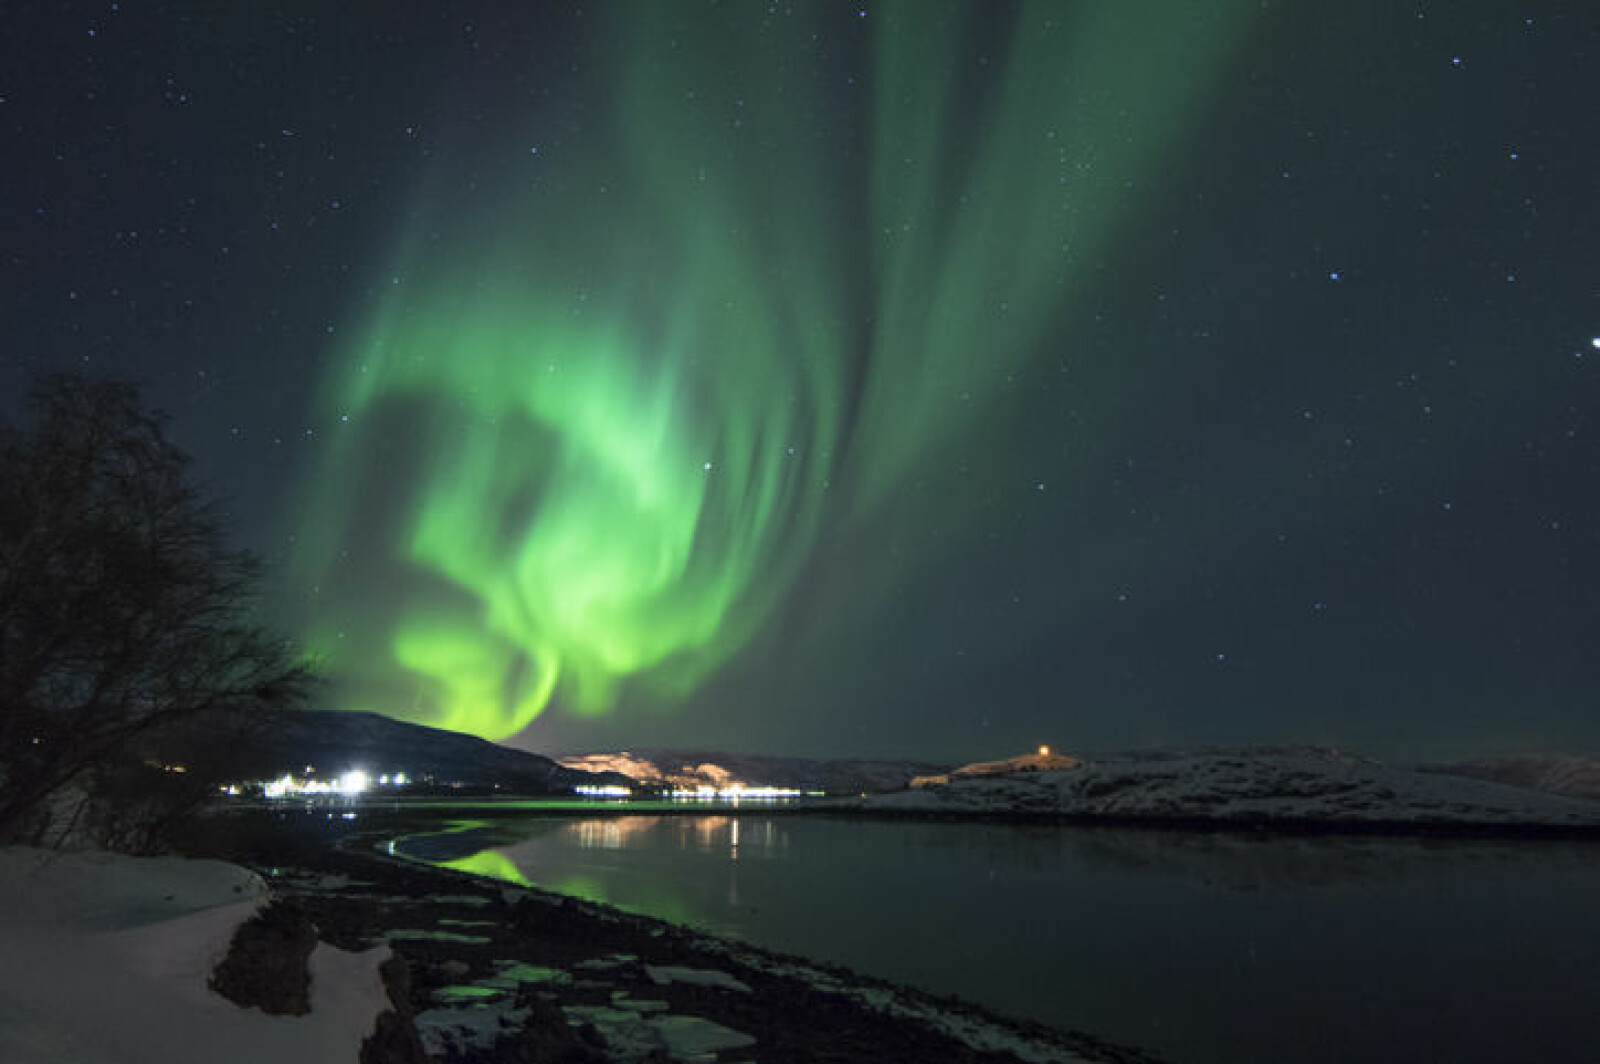 Northern Lights appear in Alta, the biggest northernmost city of Norway.